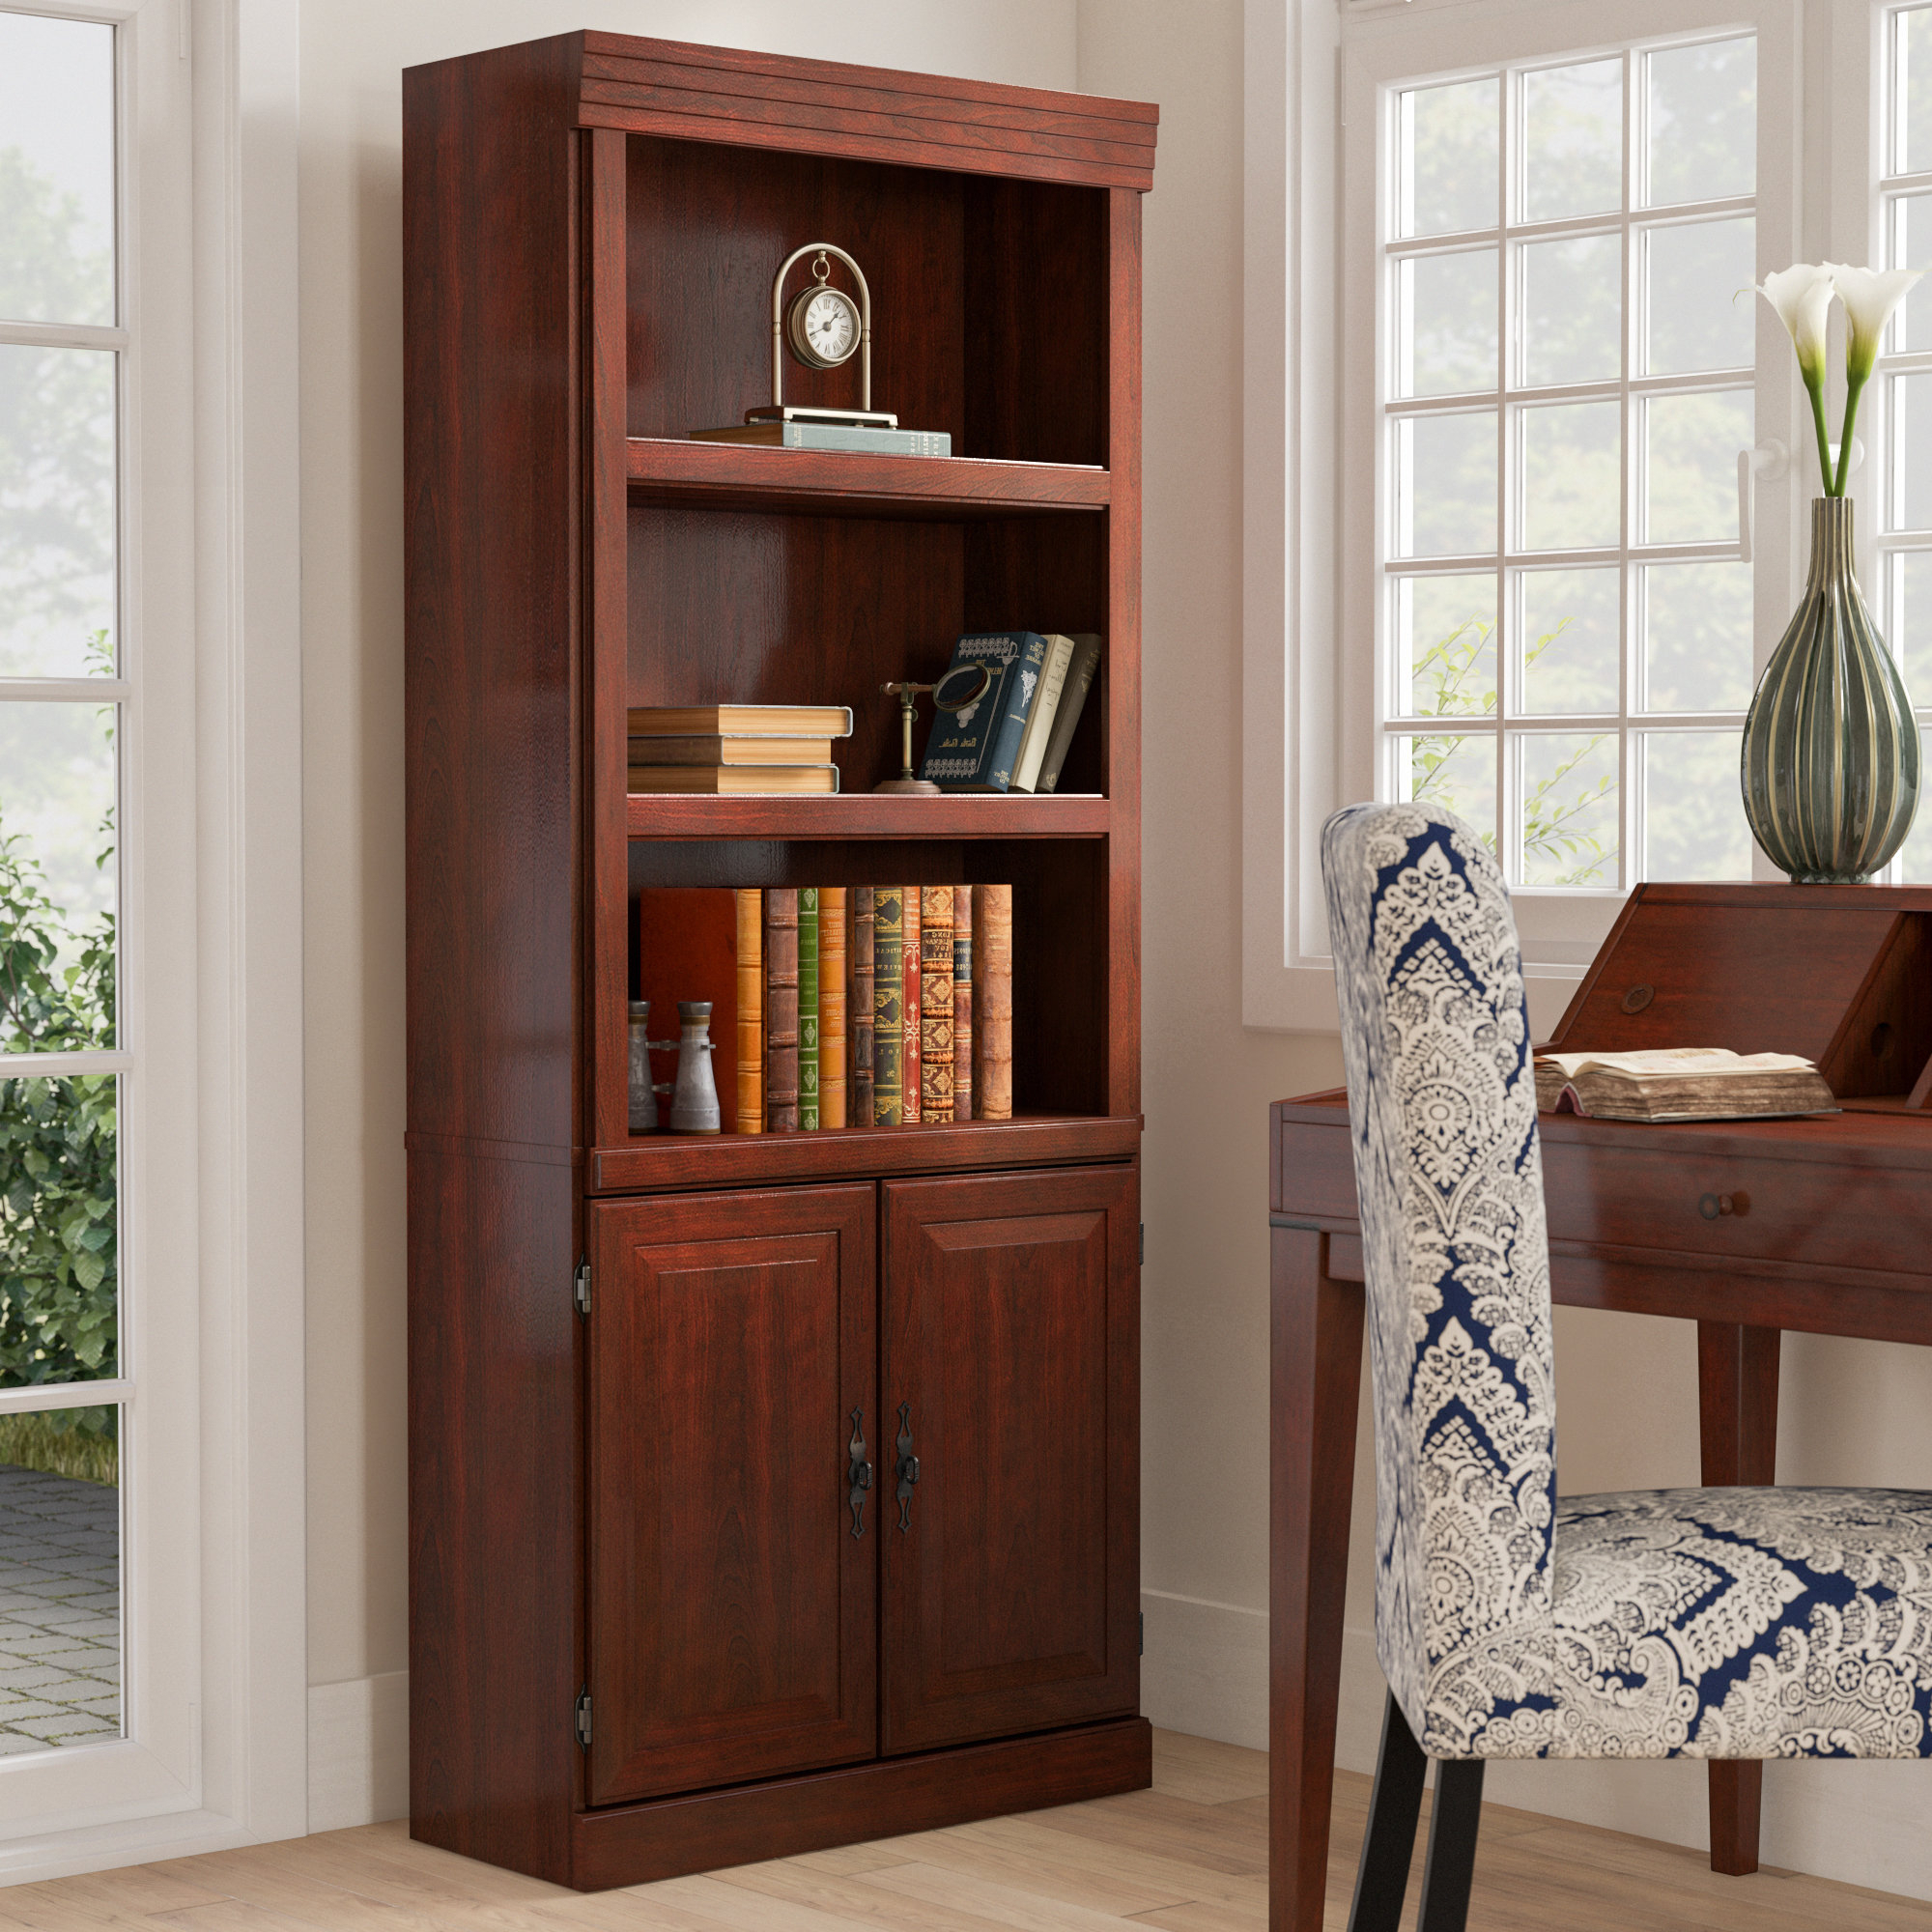 Clintonville Standard Bookcase Throughout Trendy Series C Standard Bookcases (Gallery 14 of 20)